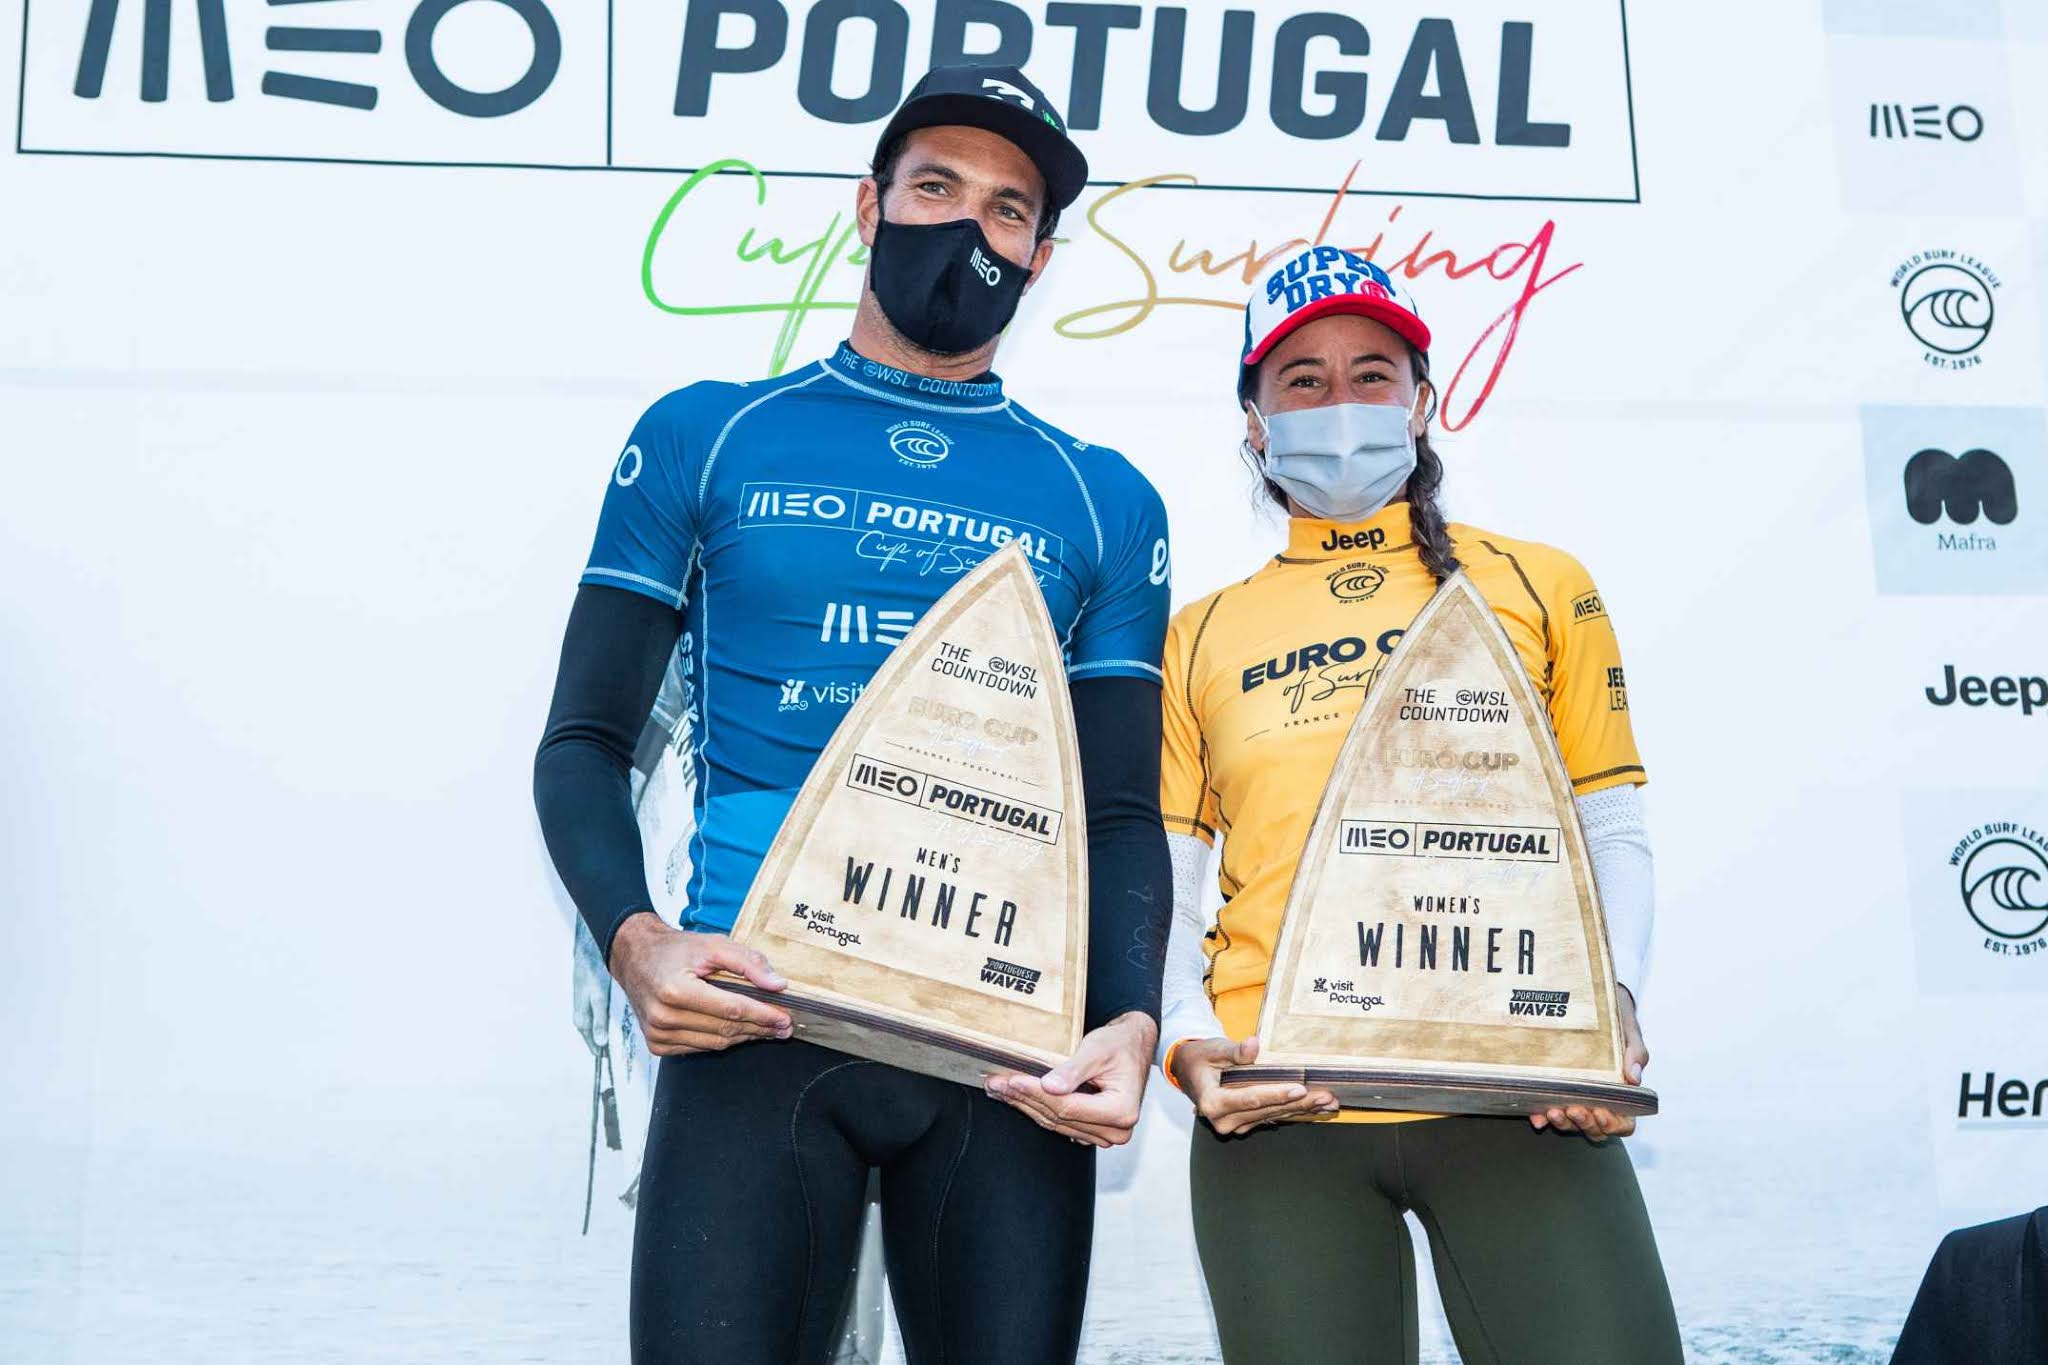 portugal wsl meo surf30 morais defay7332MeoPortugal20Poullenot